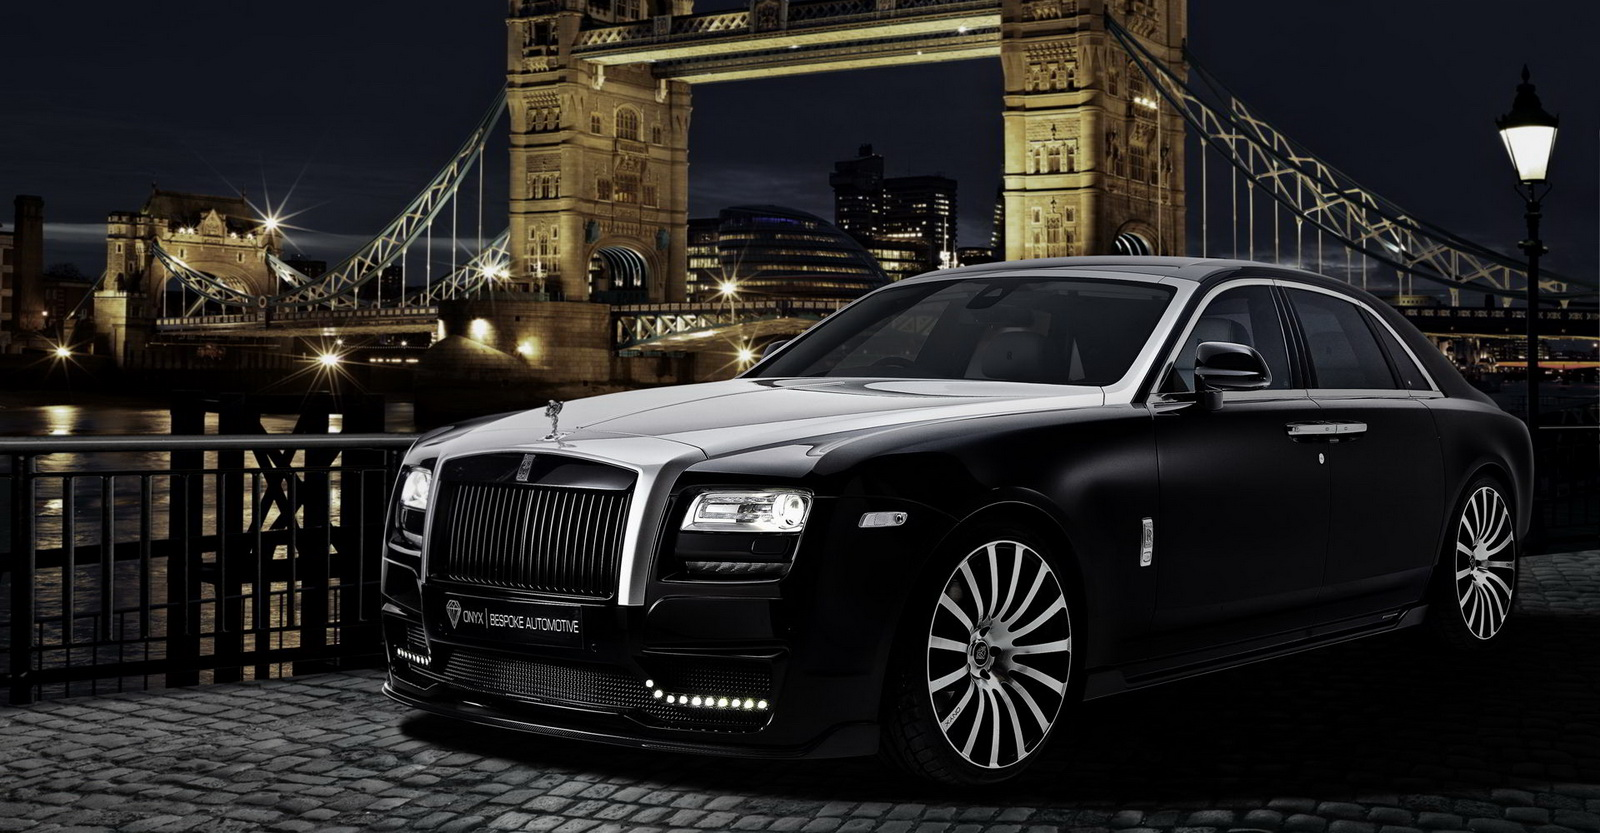 Official: Rolls-Royce Ghost By Onyx Concept